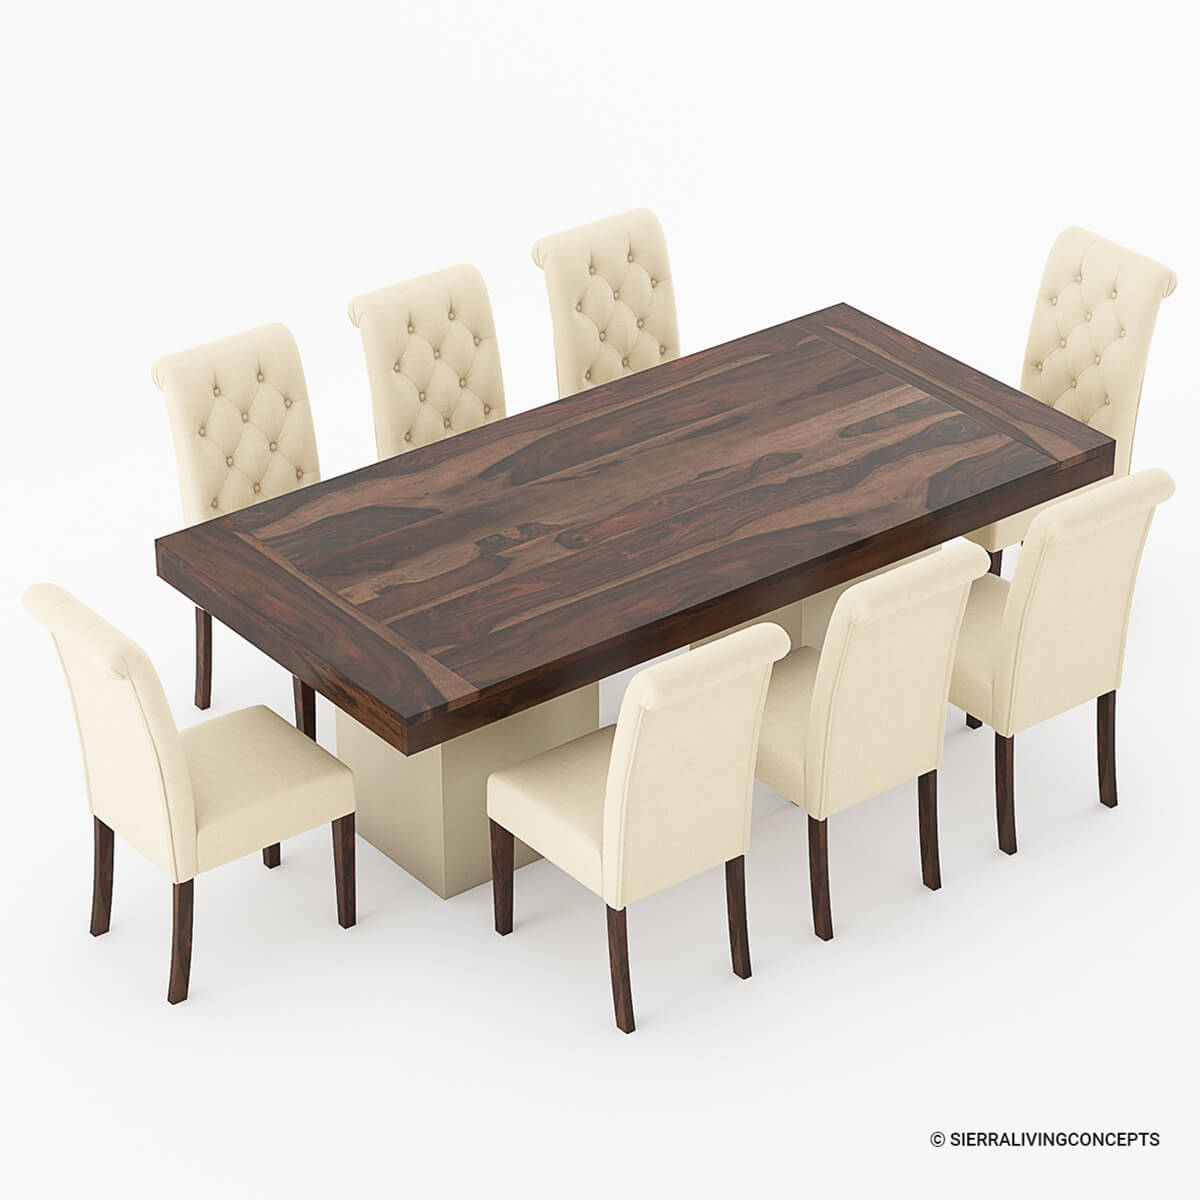 Nottingham Solid Wood Large Rustic Dining Room Table Chair Set: Solid Wood Large Rustic Dining Table With Leather Parson